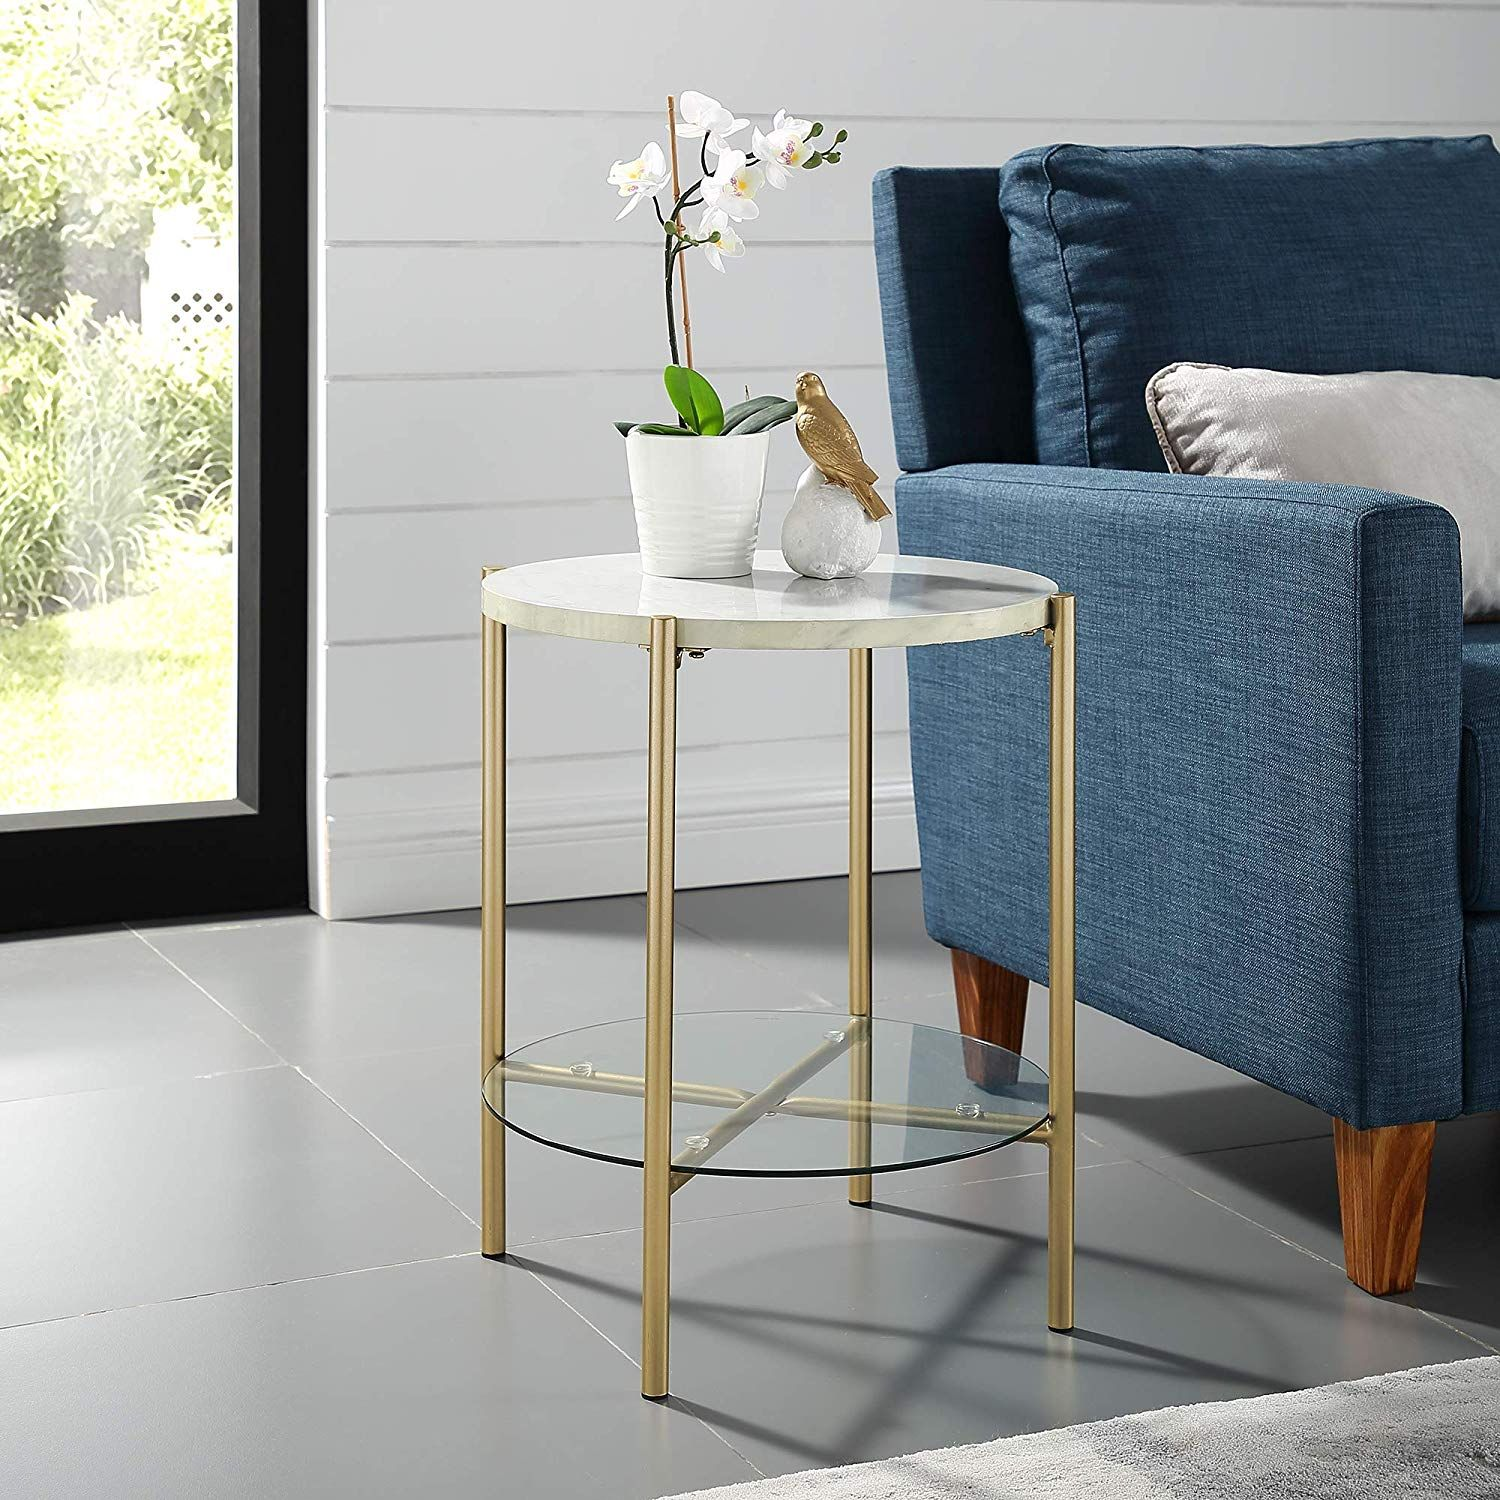 We Furniture Azf20srdstmgd Side Table 20 Faux White Marble Gold Living Room Accent Tables Furniture Living Room End Tables #round #living #room #end #tables